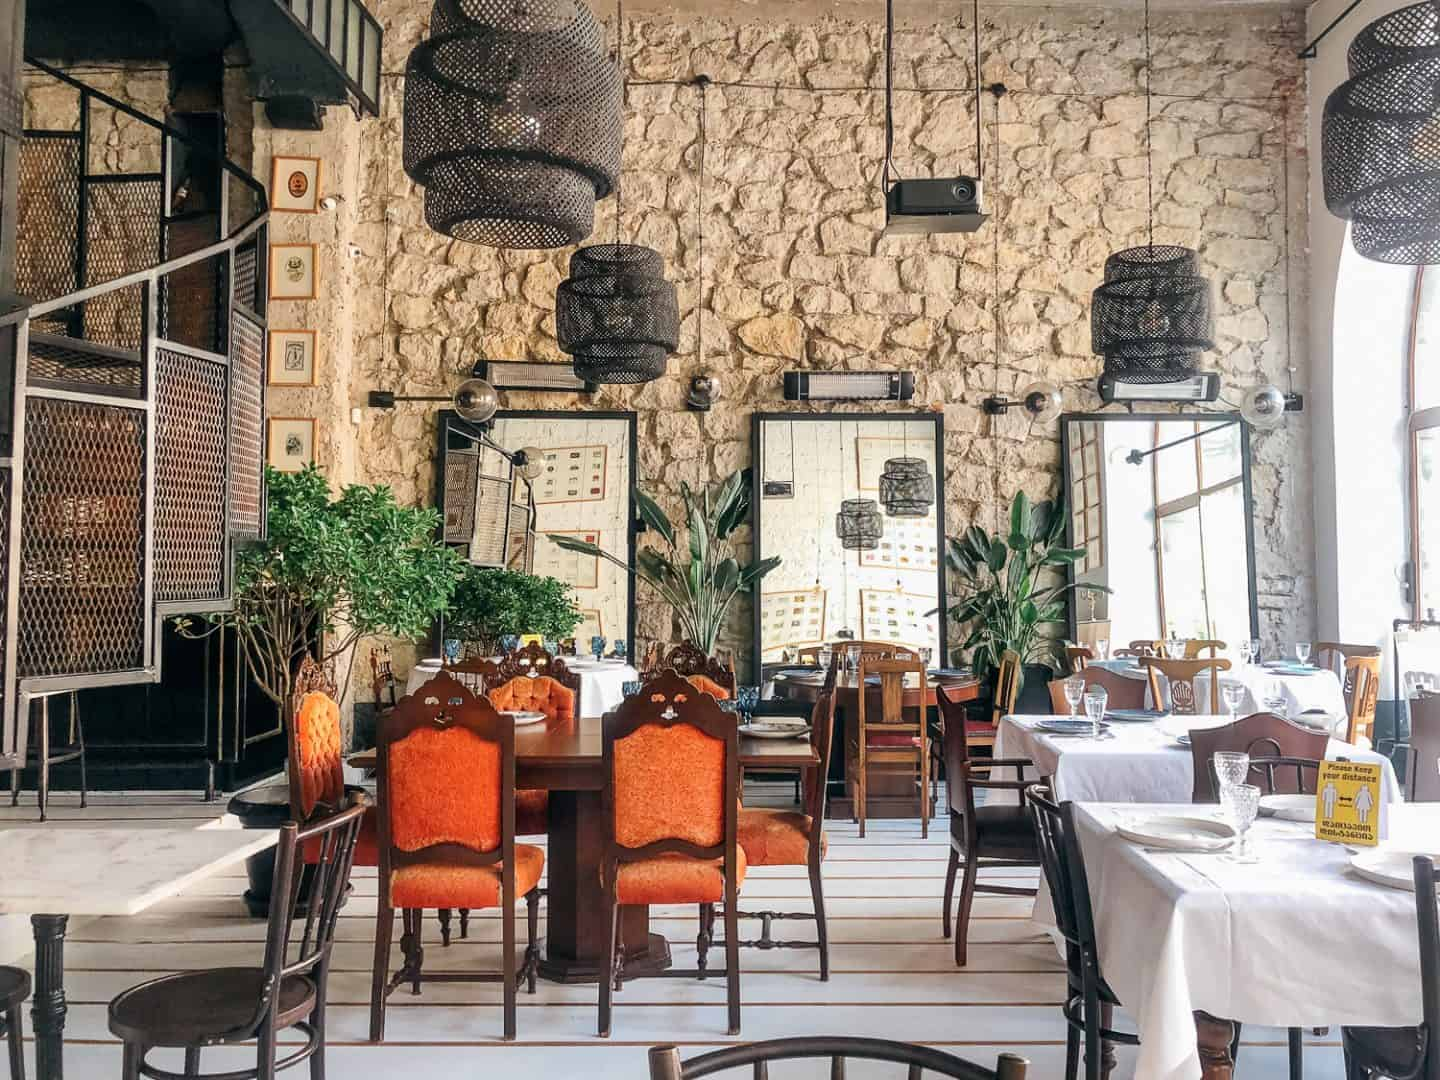 inside of a fancy restaurant with stone and plants